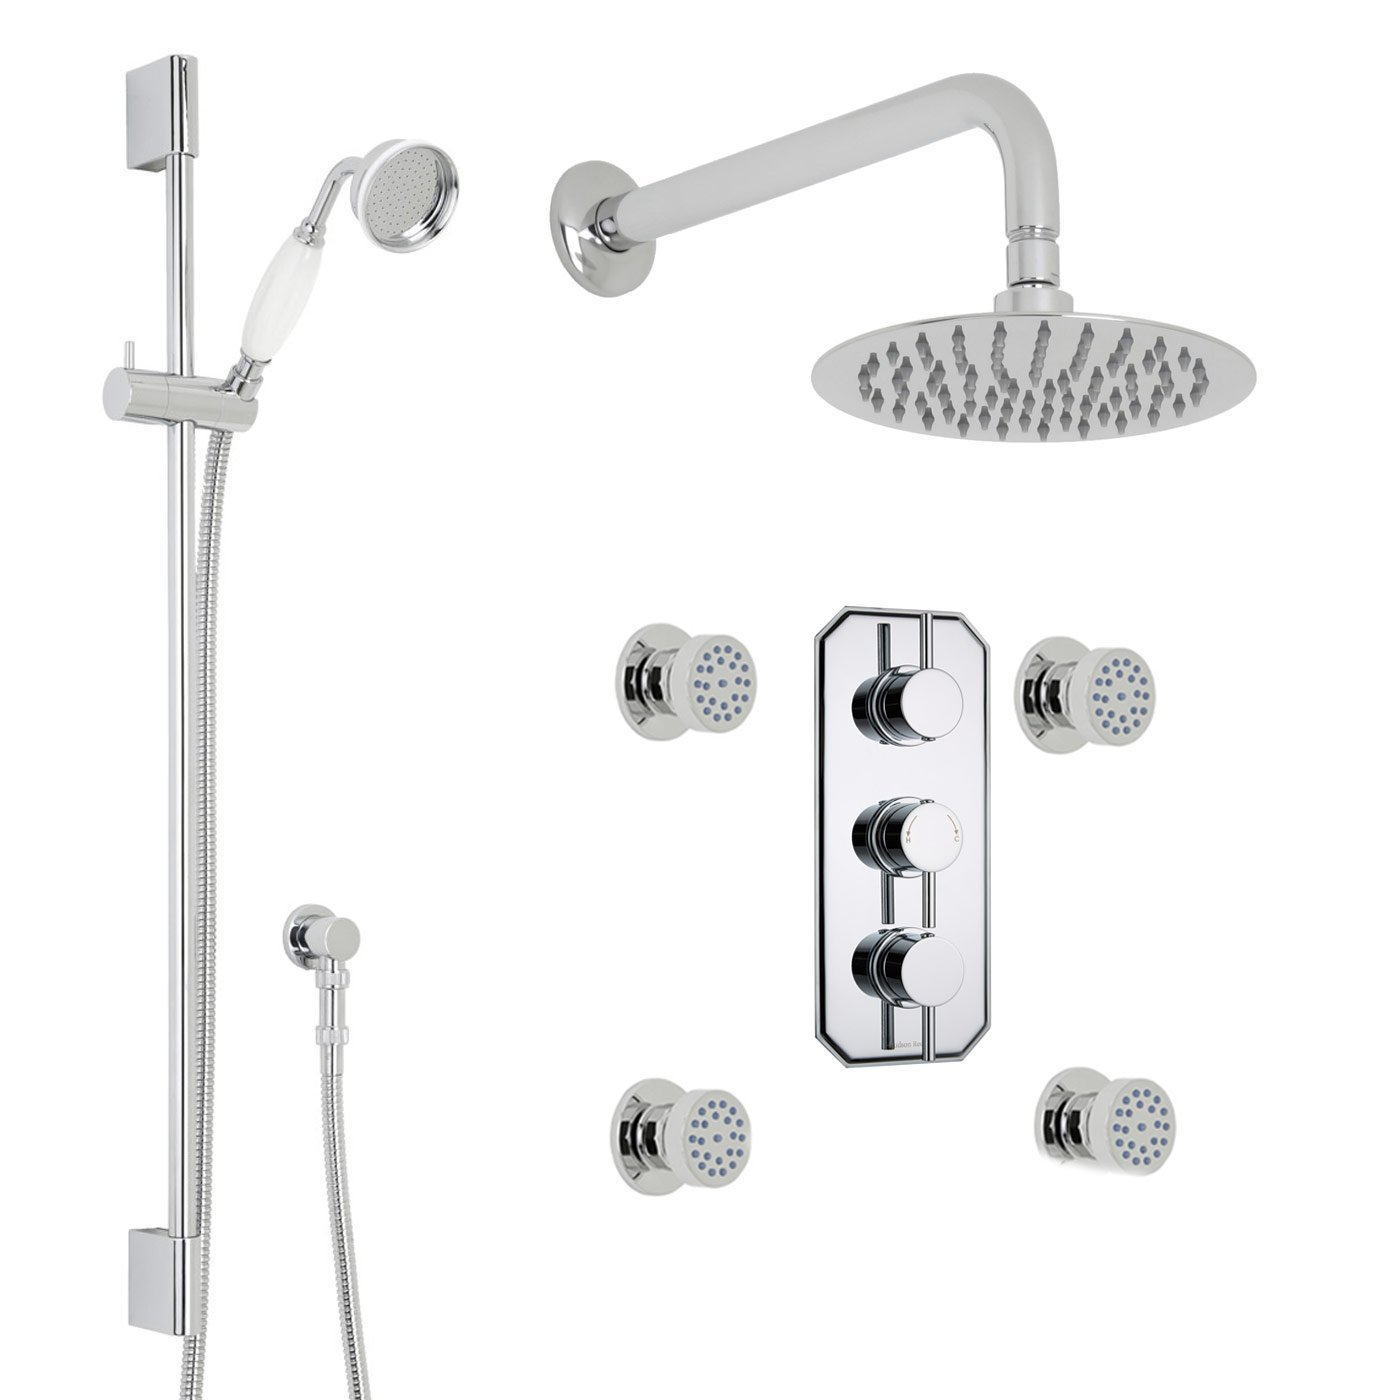 Cheap Reed Shower, find Reed Shower deals on line at Alibaba.com